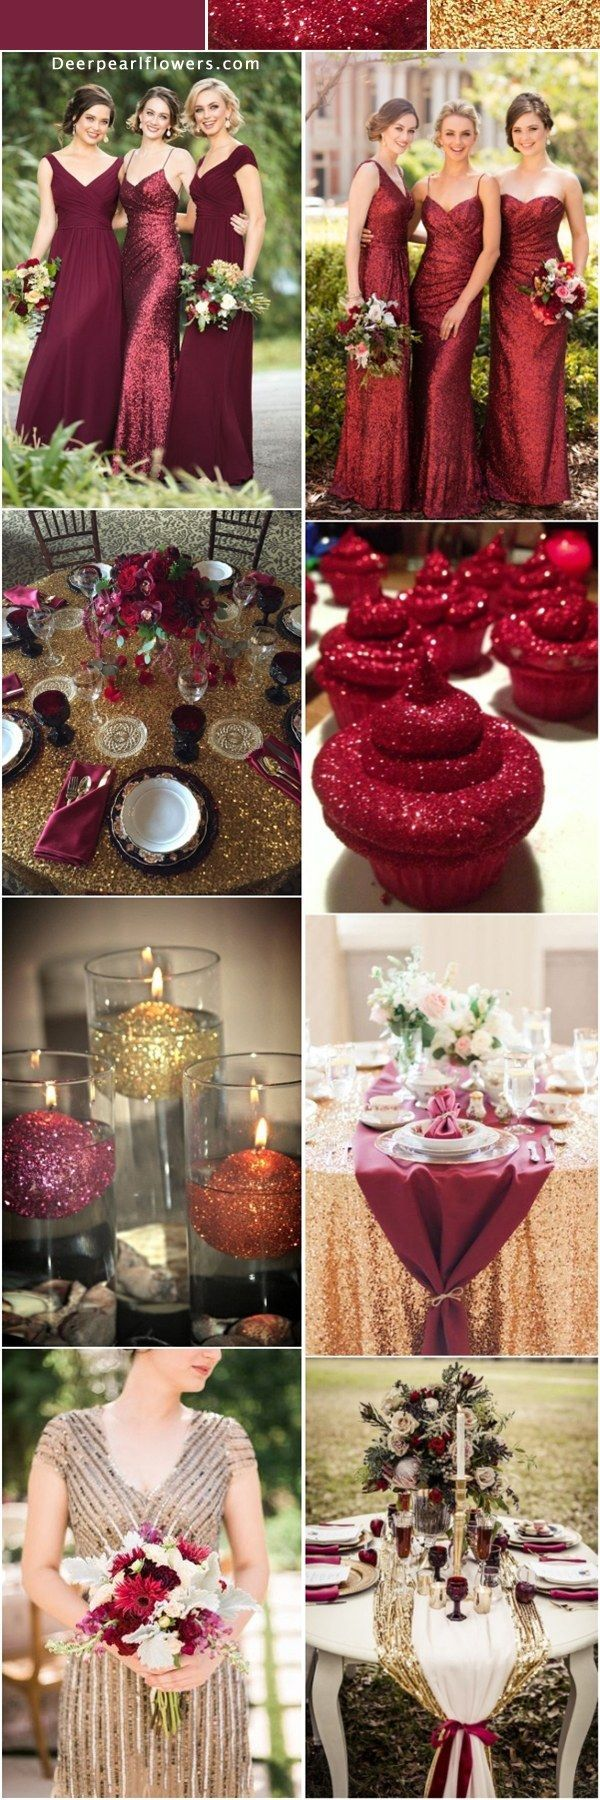 best Fall Wedding Trends  Sugar Creek images on Pinterest